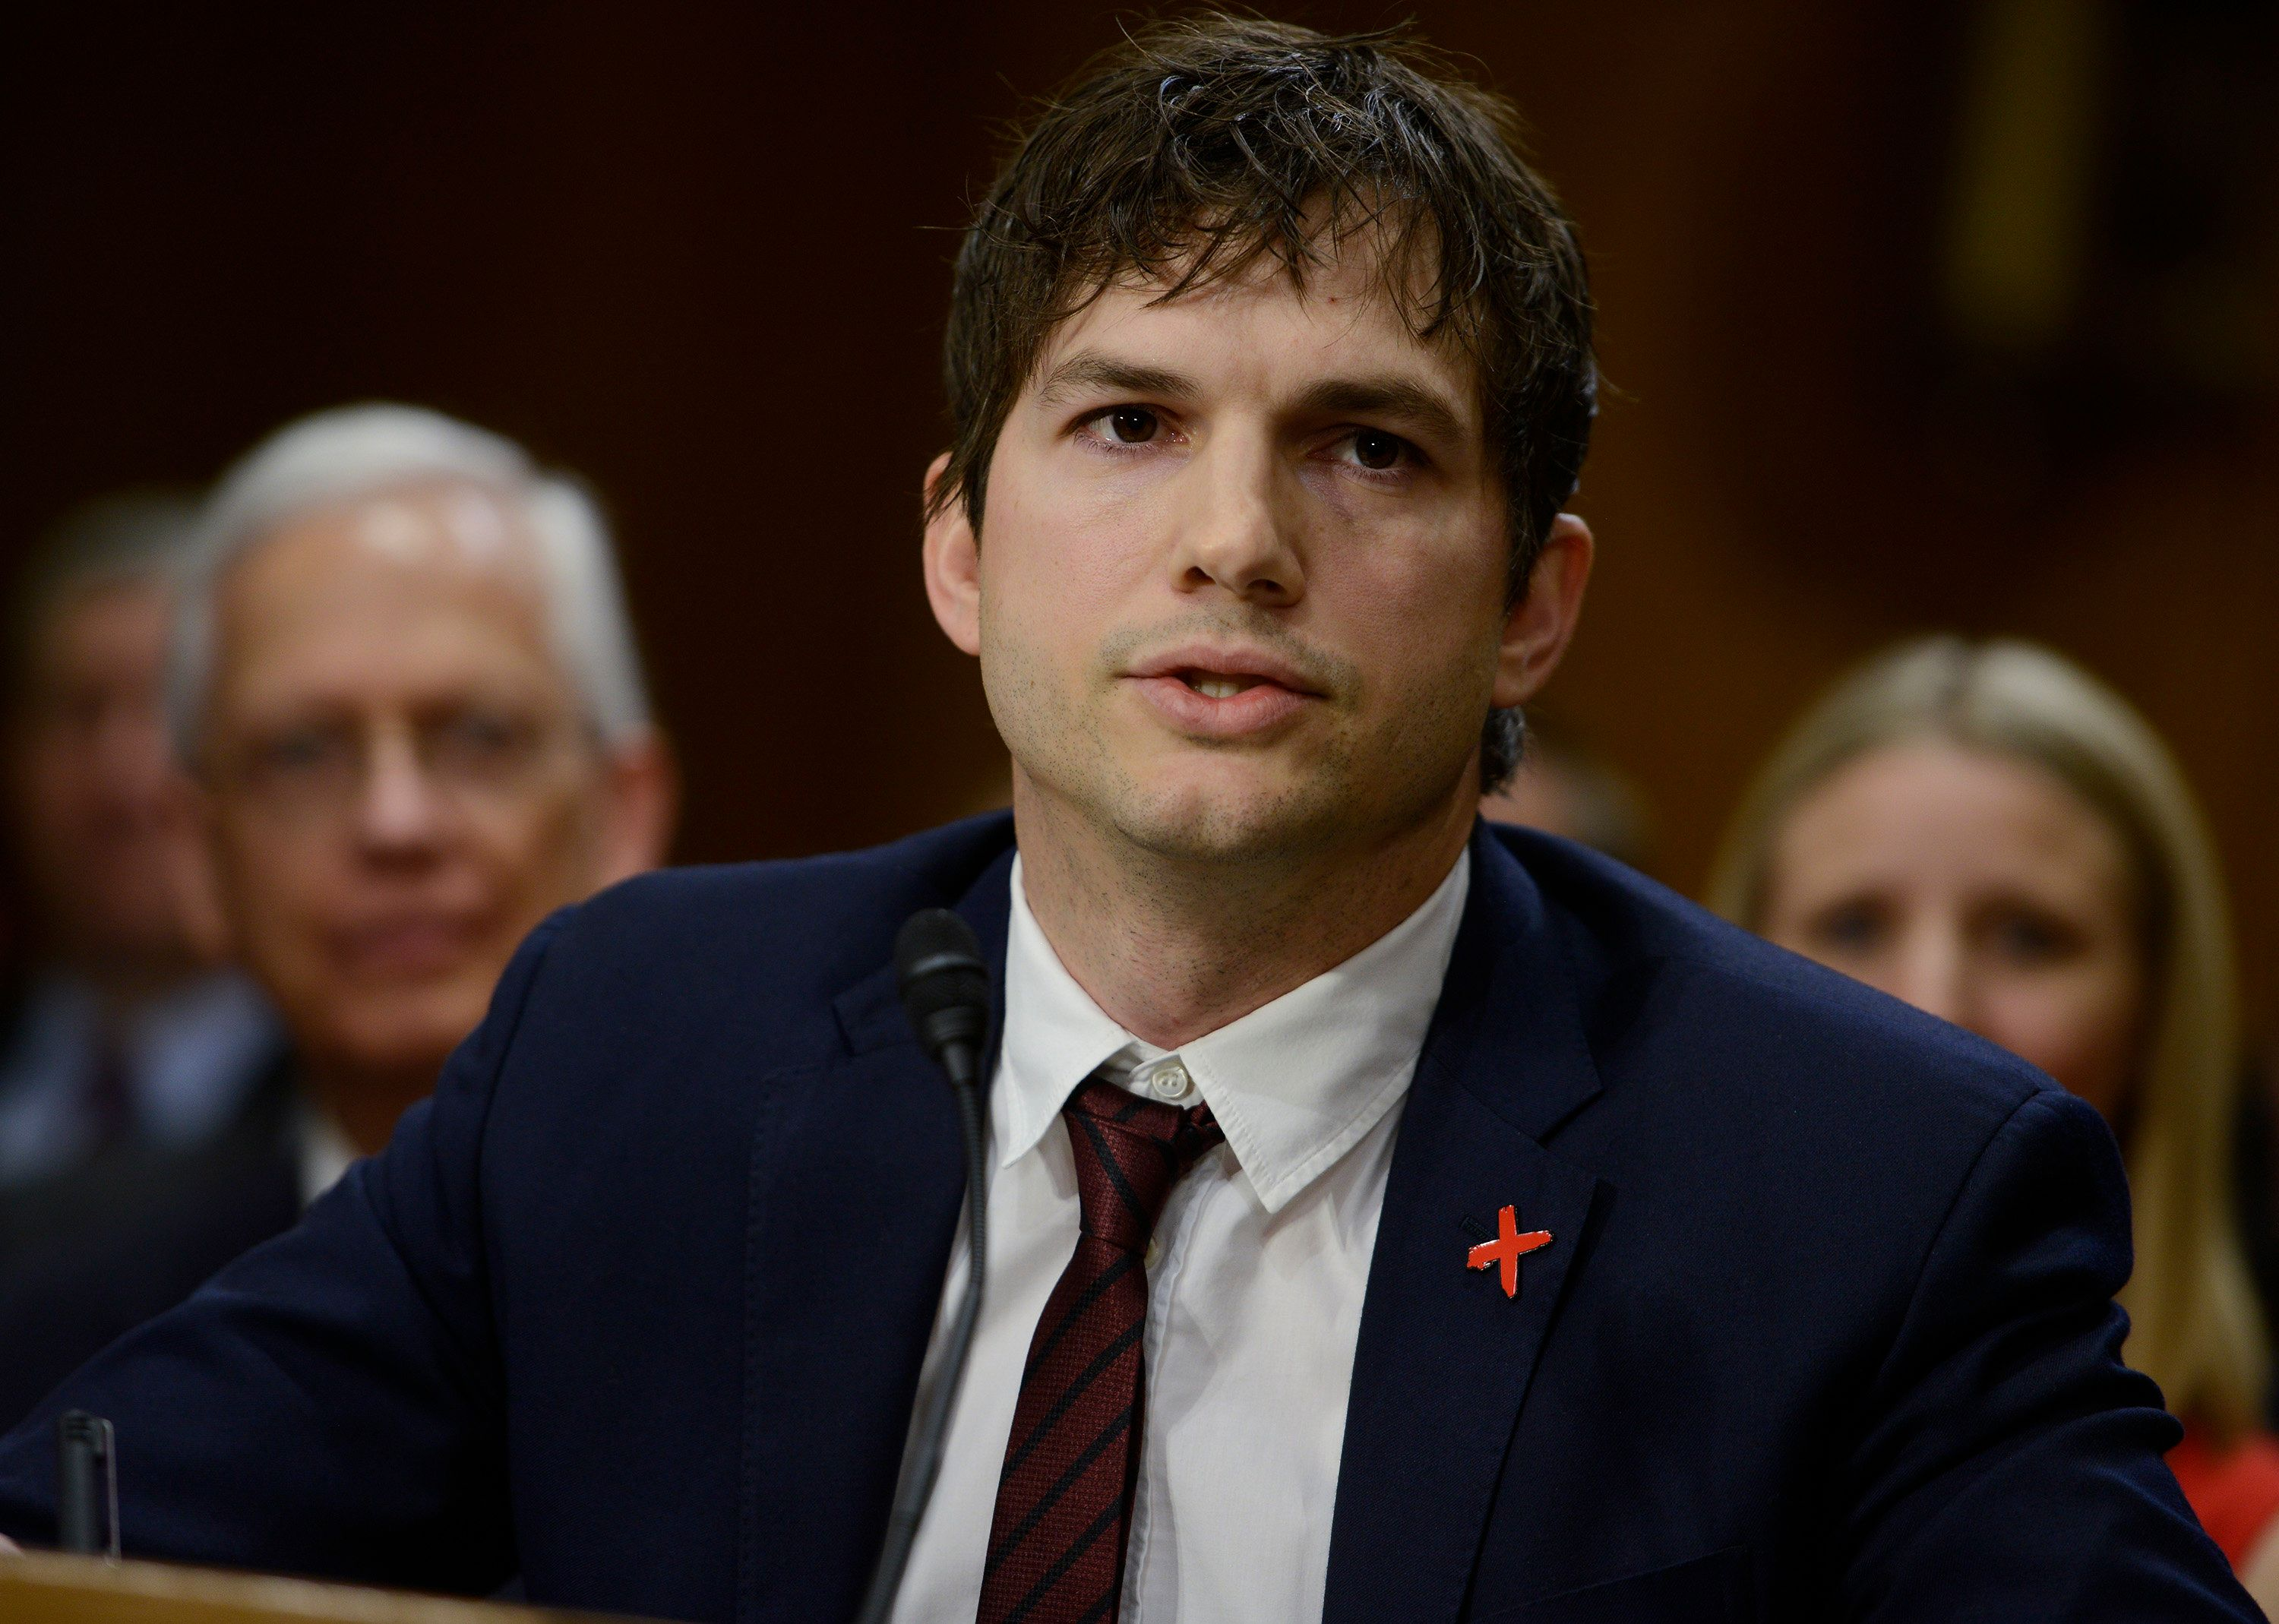 Ashton Kutcher Gives Emotional Testimony At Hearing To End Modern